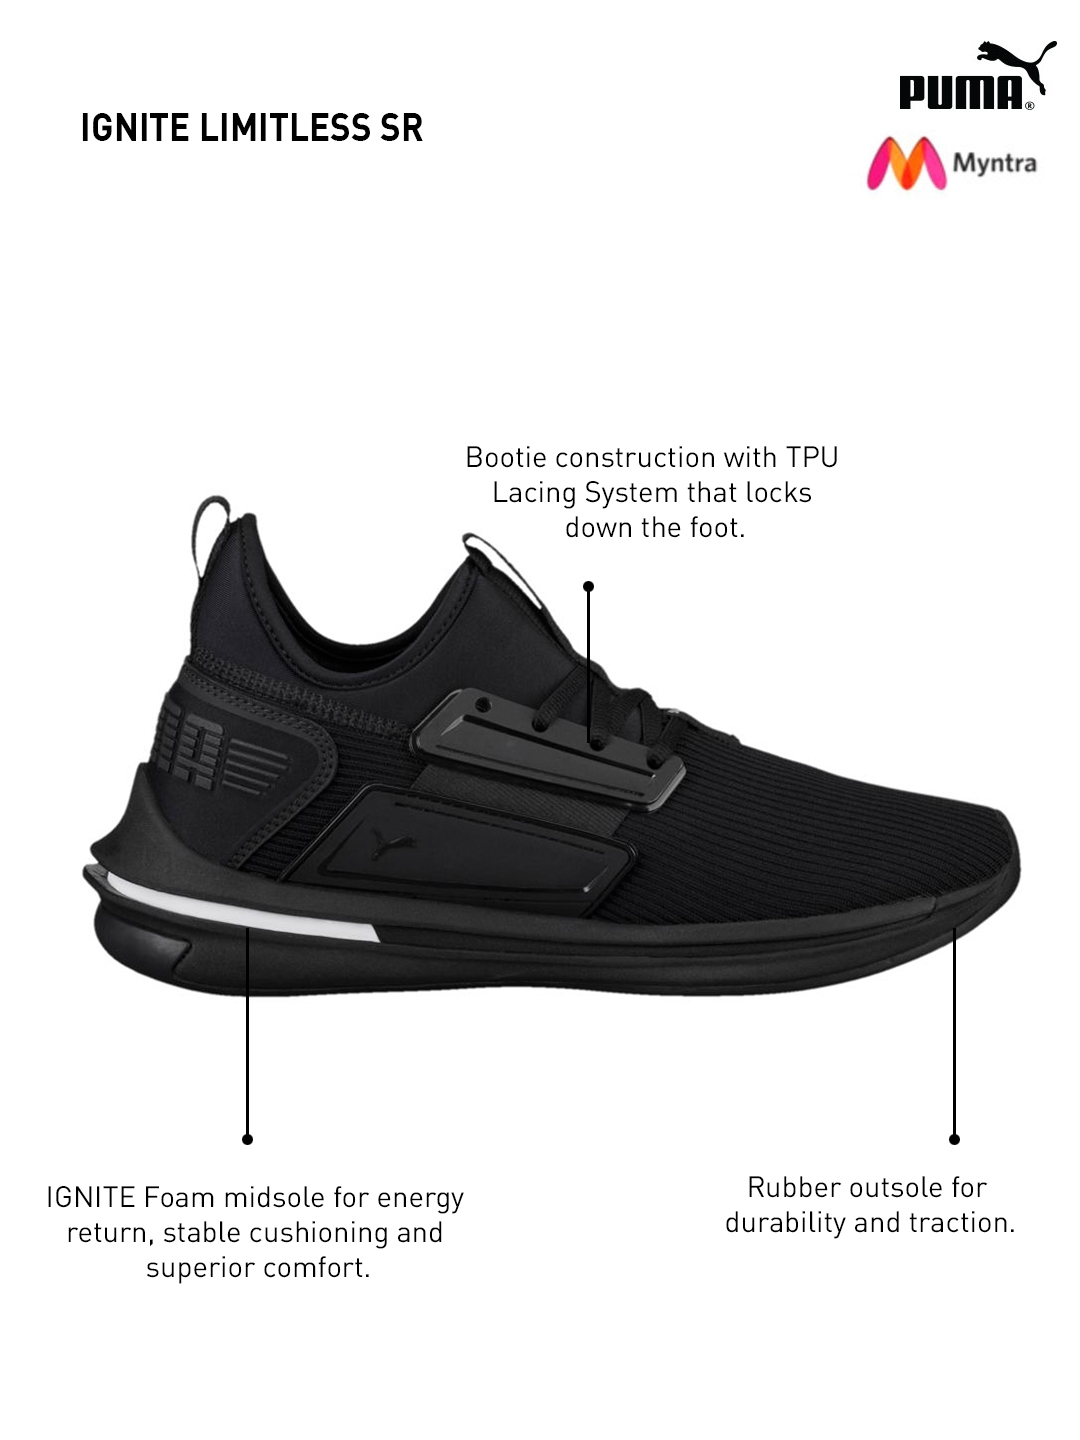 34ee4db25b19 Buy Puma Men Black IGNITE Limitless SR Sneakers - Casual Shoes for ...